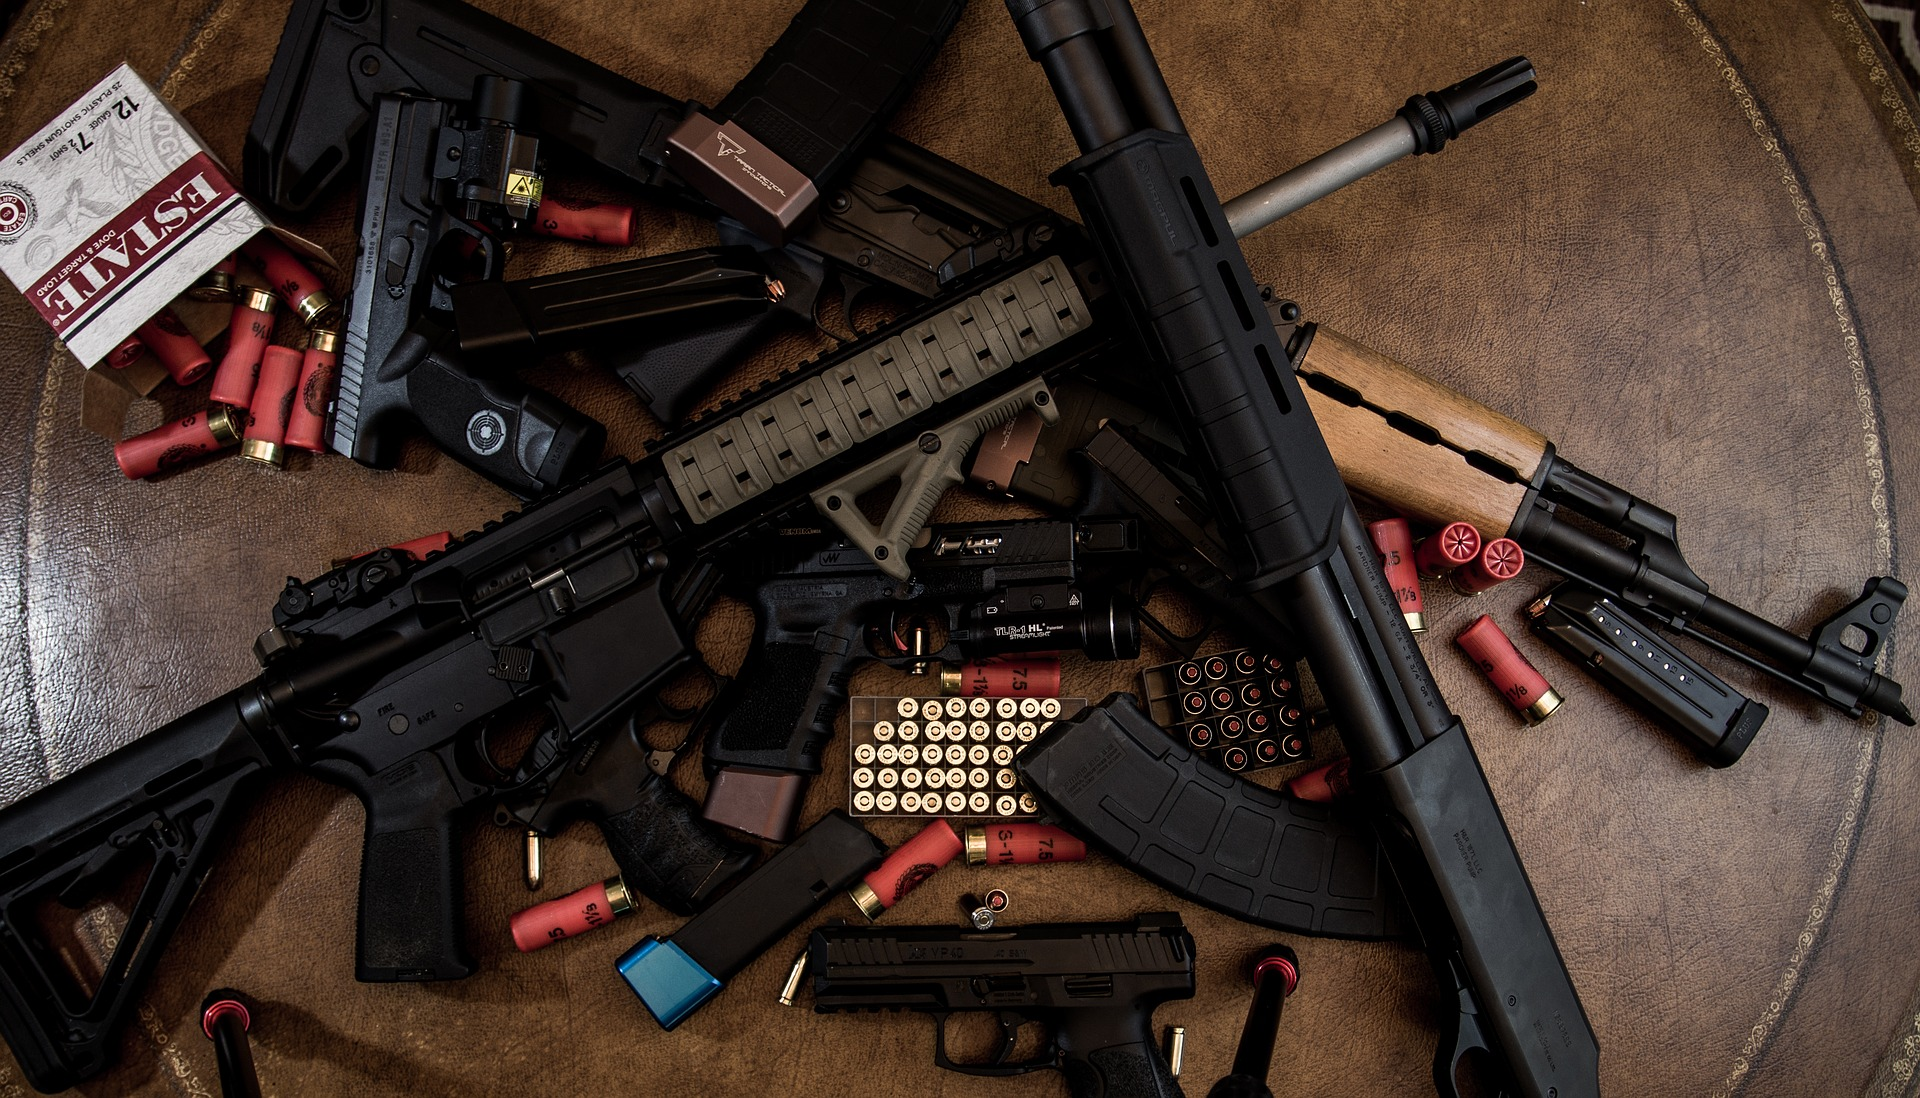 weapons-3417507_1920